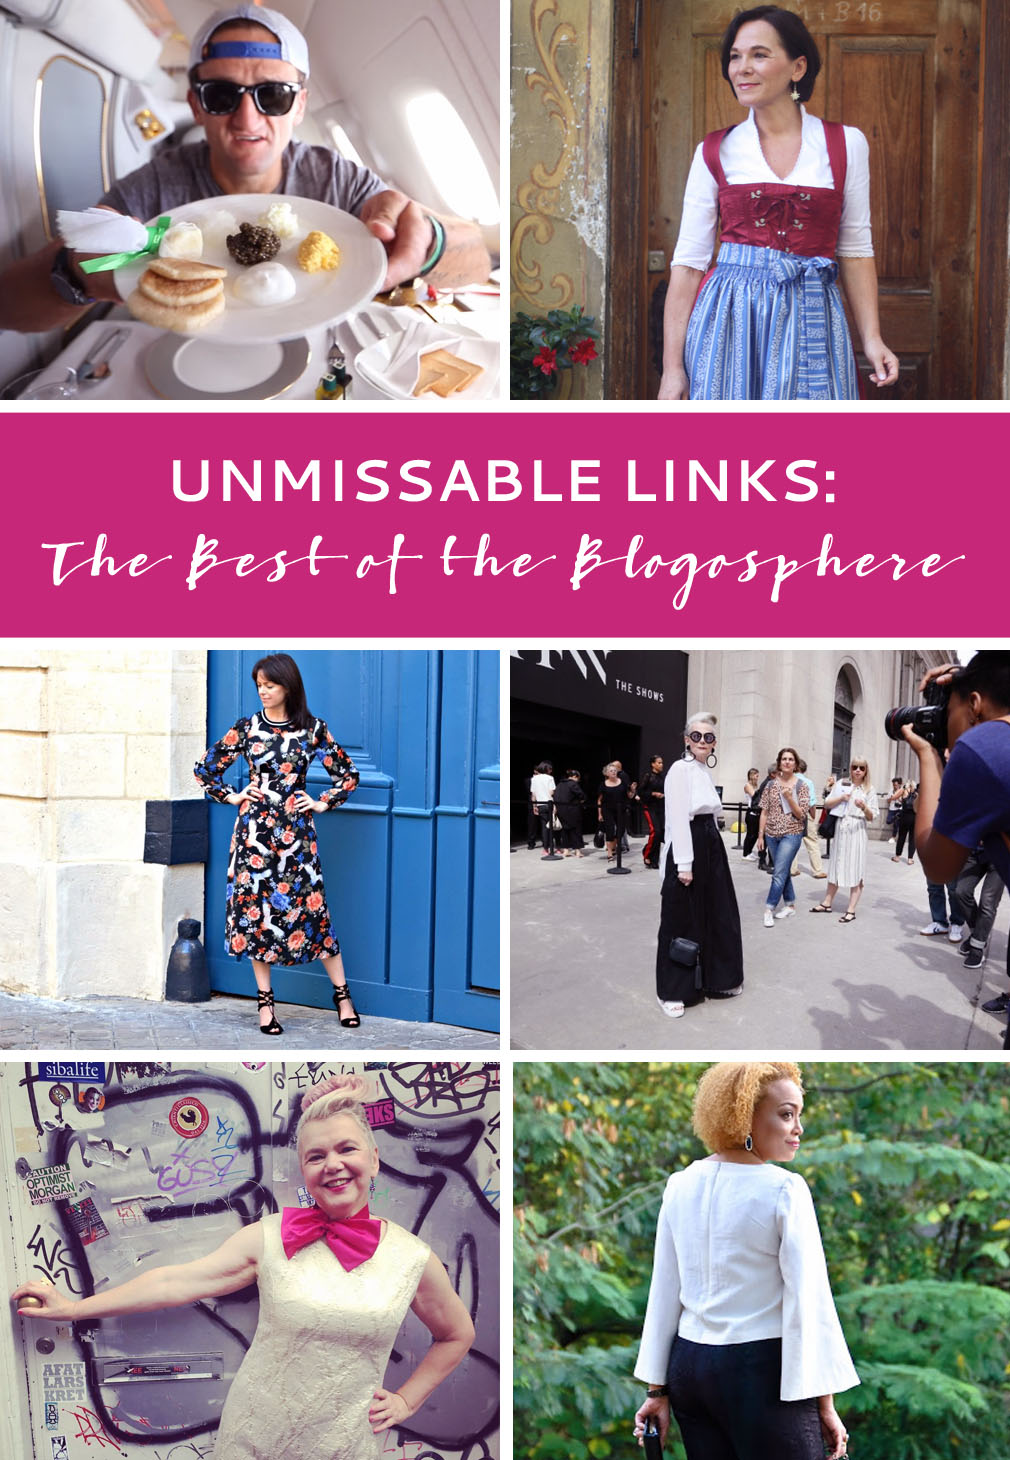 13 Unmissable Links | The Best of the Blogosphere - September 2016 | Not Dressed As Lamb